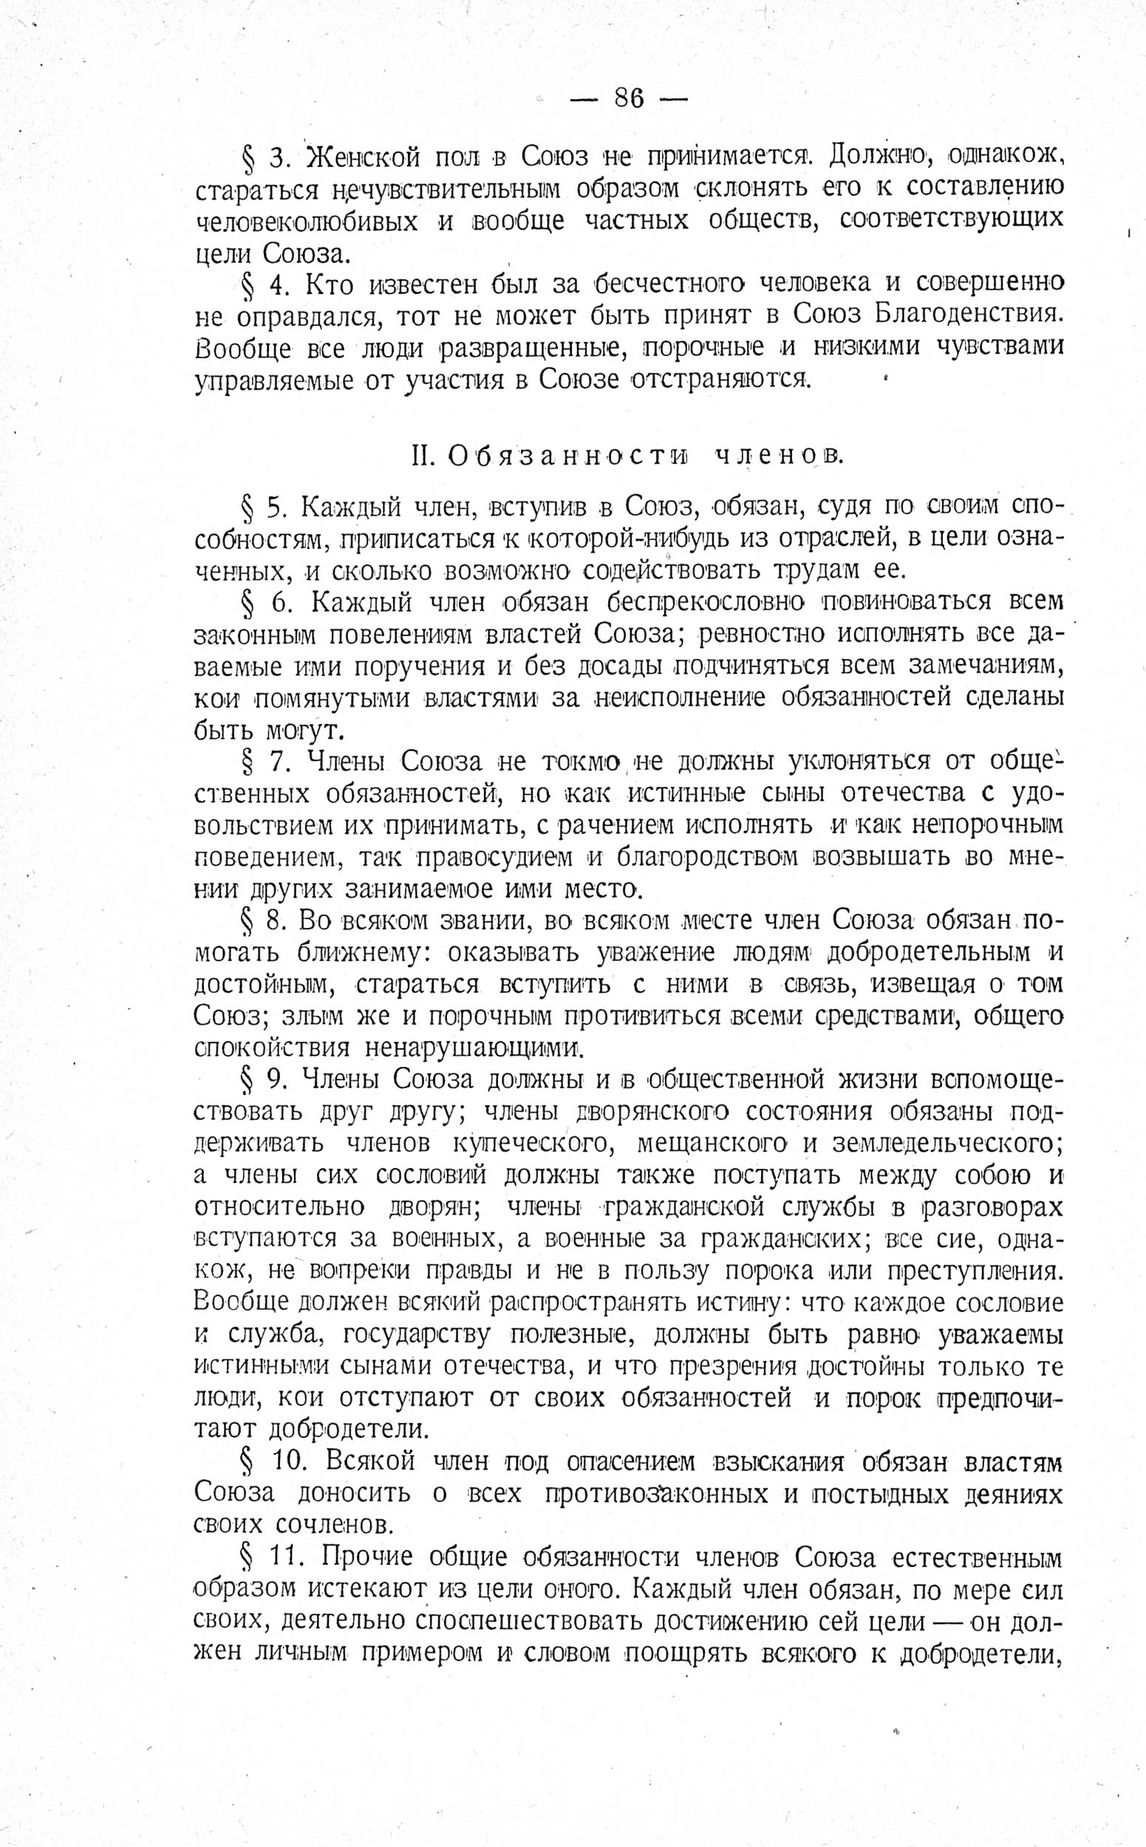 http://elib.shpl.ru/pages/625669/zooms/7